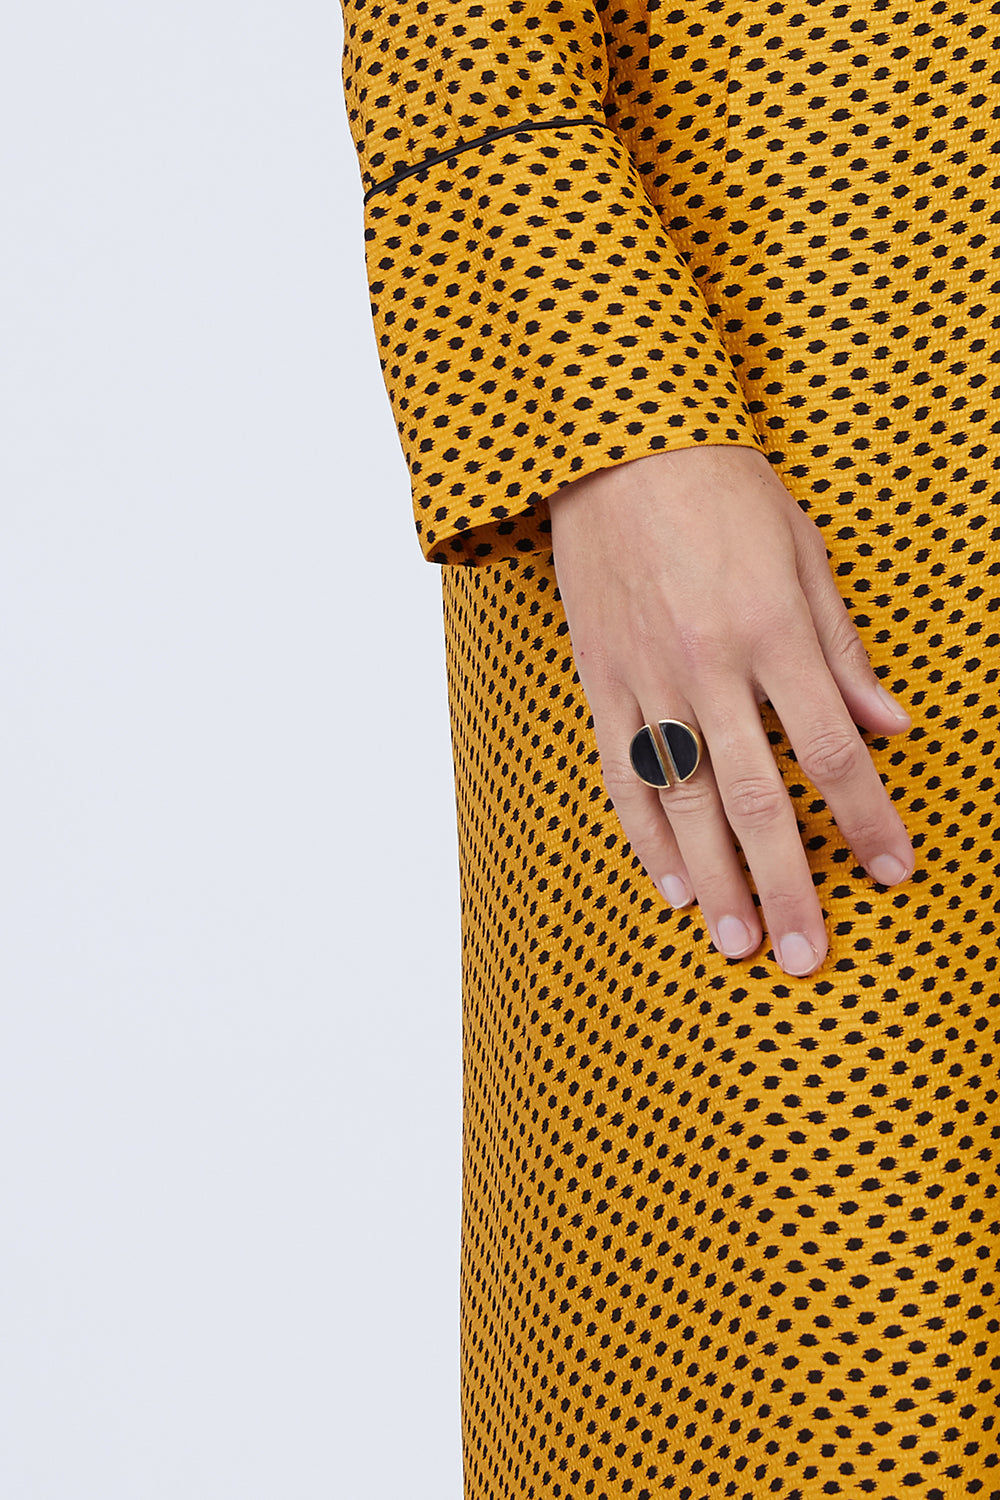 SOKO JEWELRY Split Moon Ring - Black Jewelry | Black| Soko Jewelry Split Moon Ring - Black Split black horn brass ring   Recycled polished brass Handcrafted in Kenya Front View